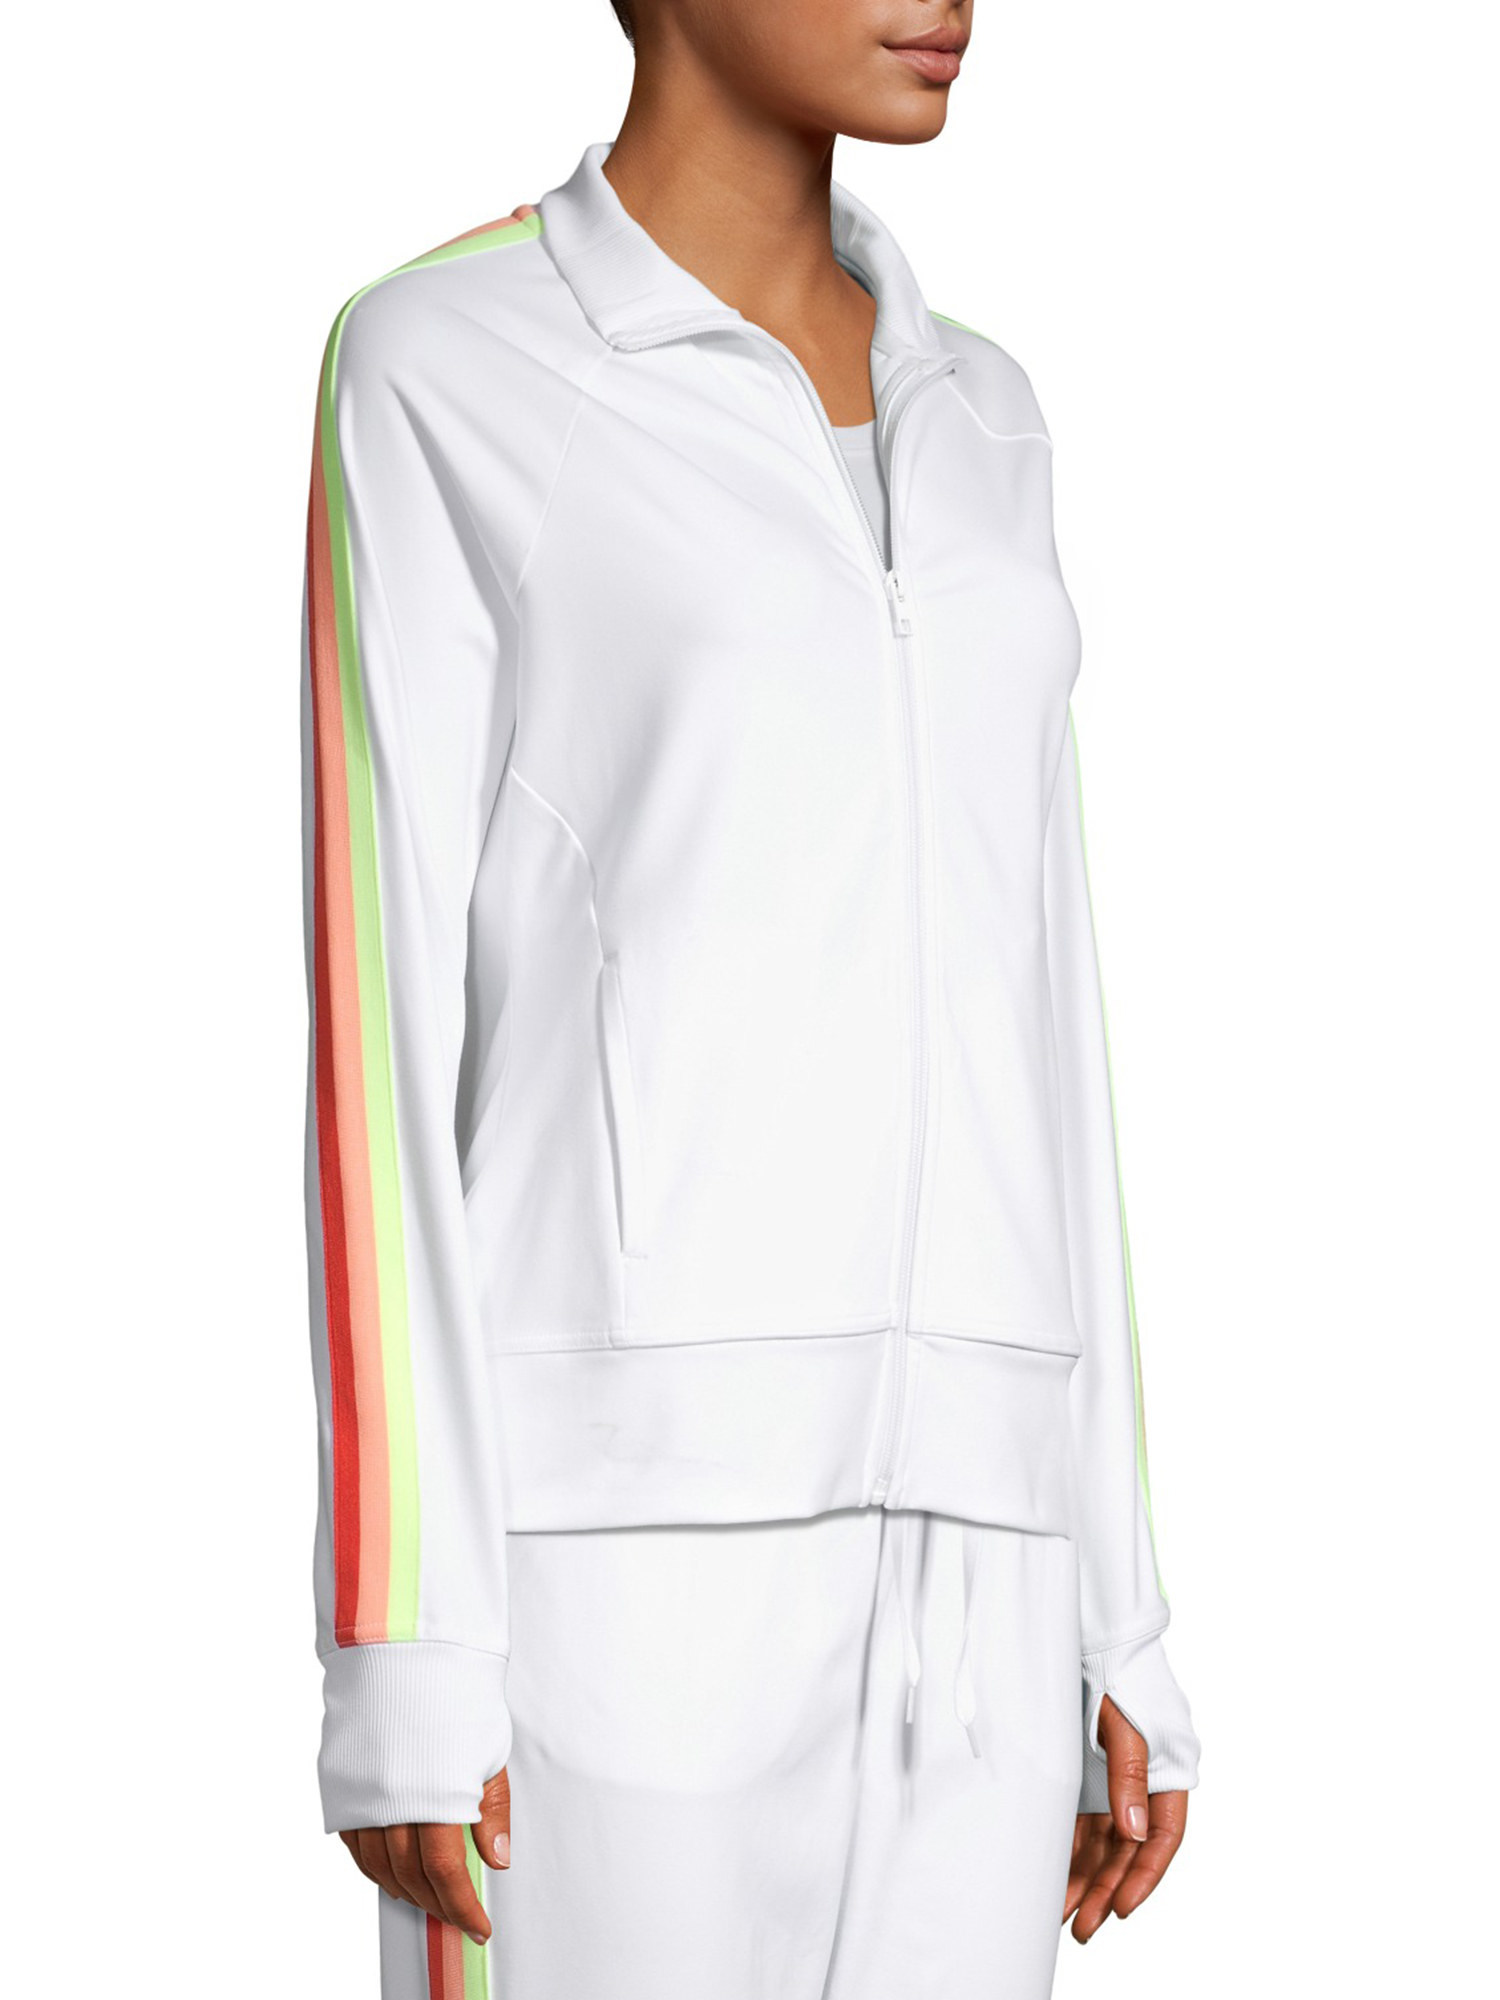 model in white zip-up with rainbow stripe sleeves